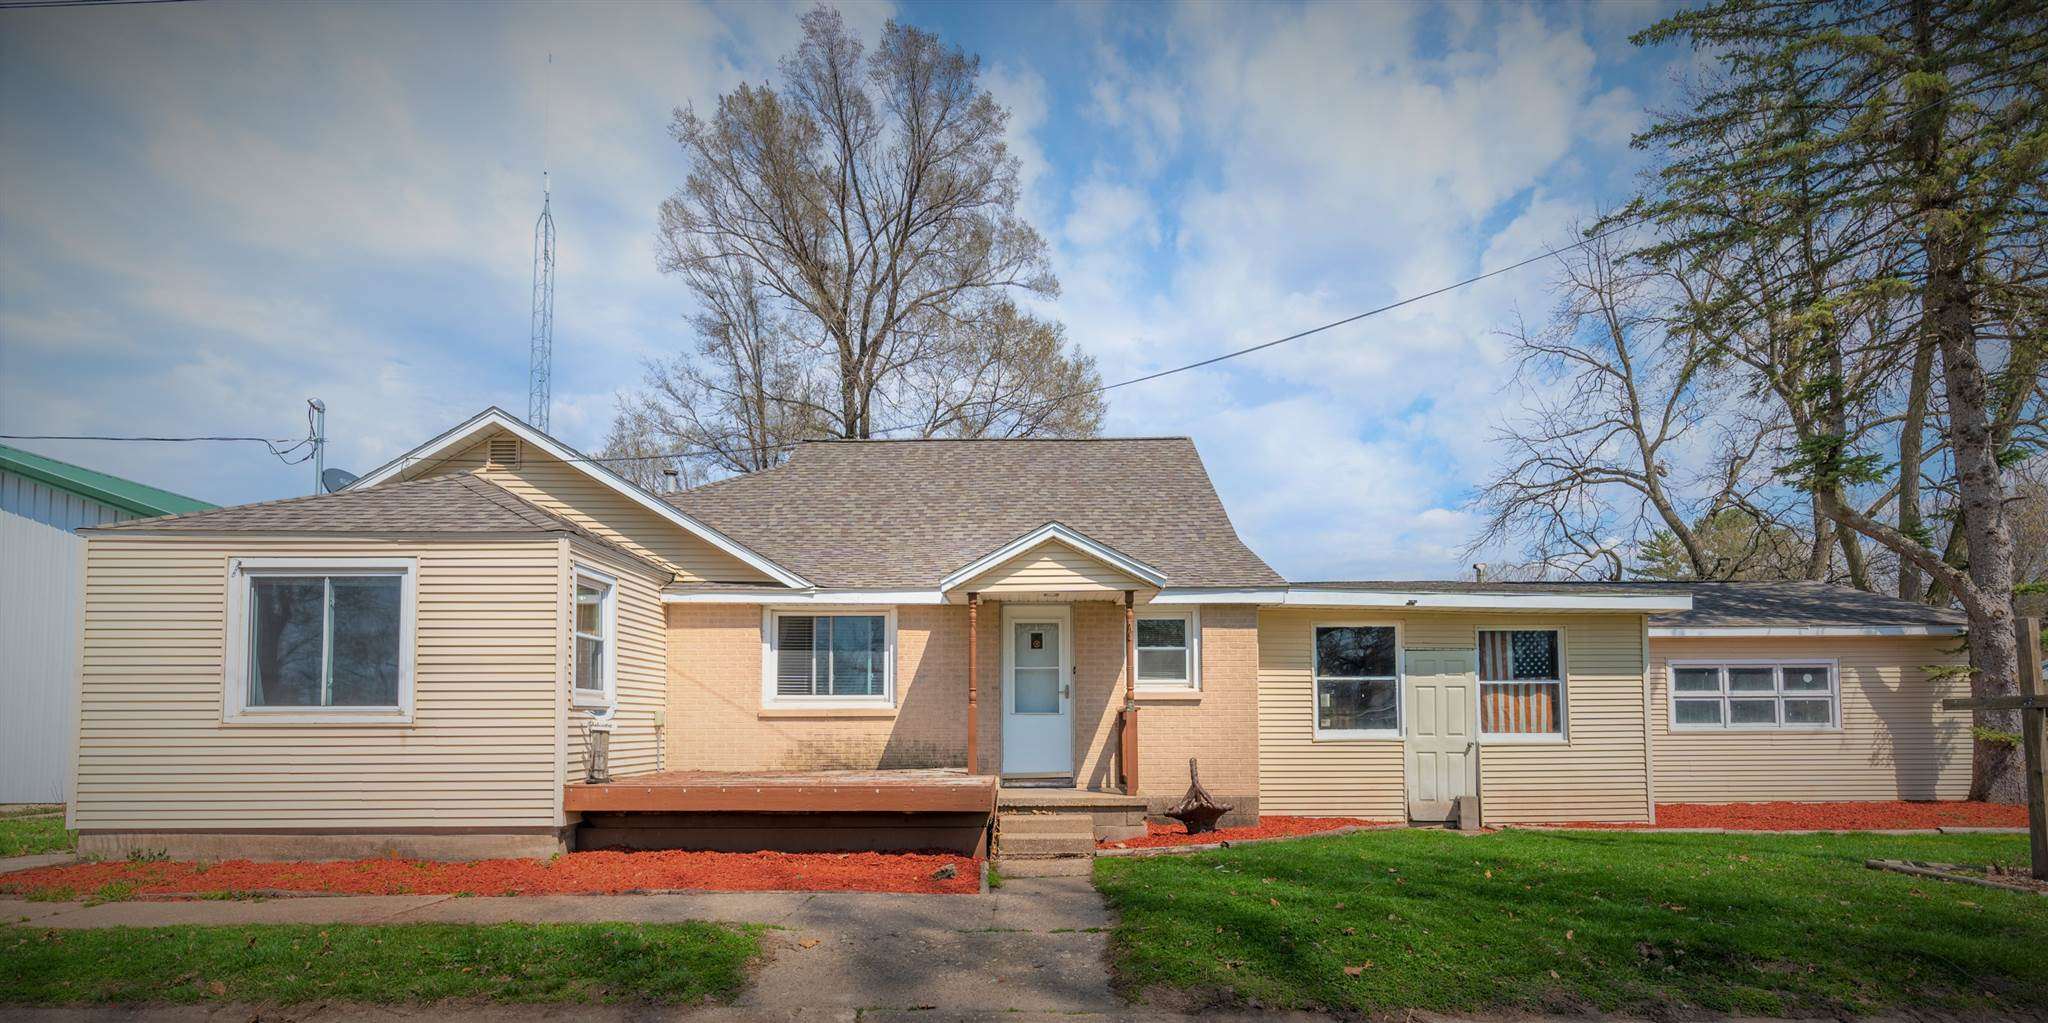 209 N PARK Property Photo - Albany, IL real estate listing